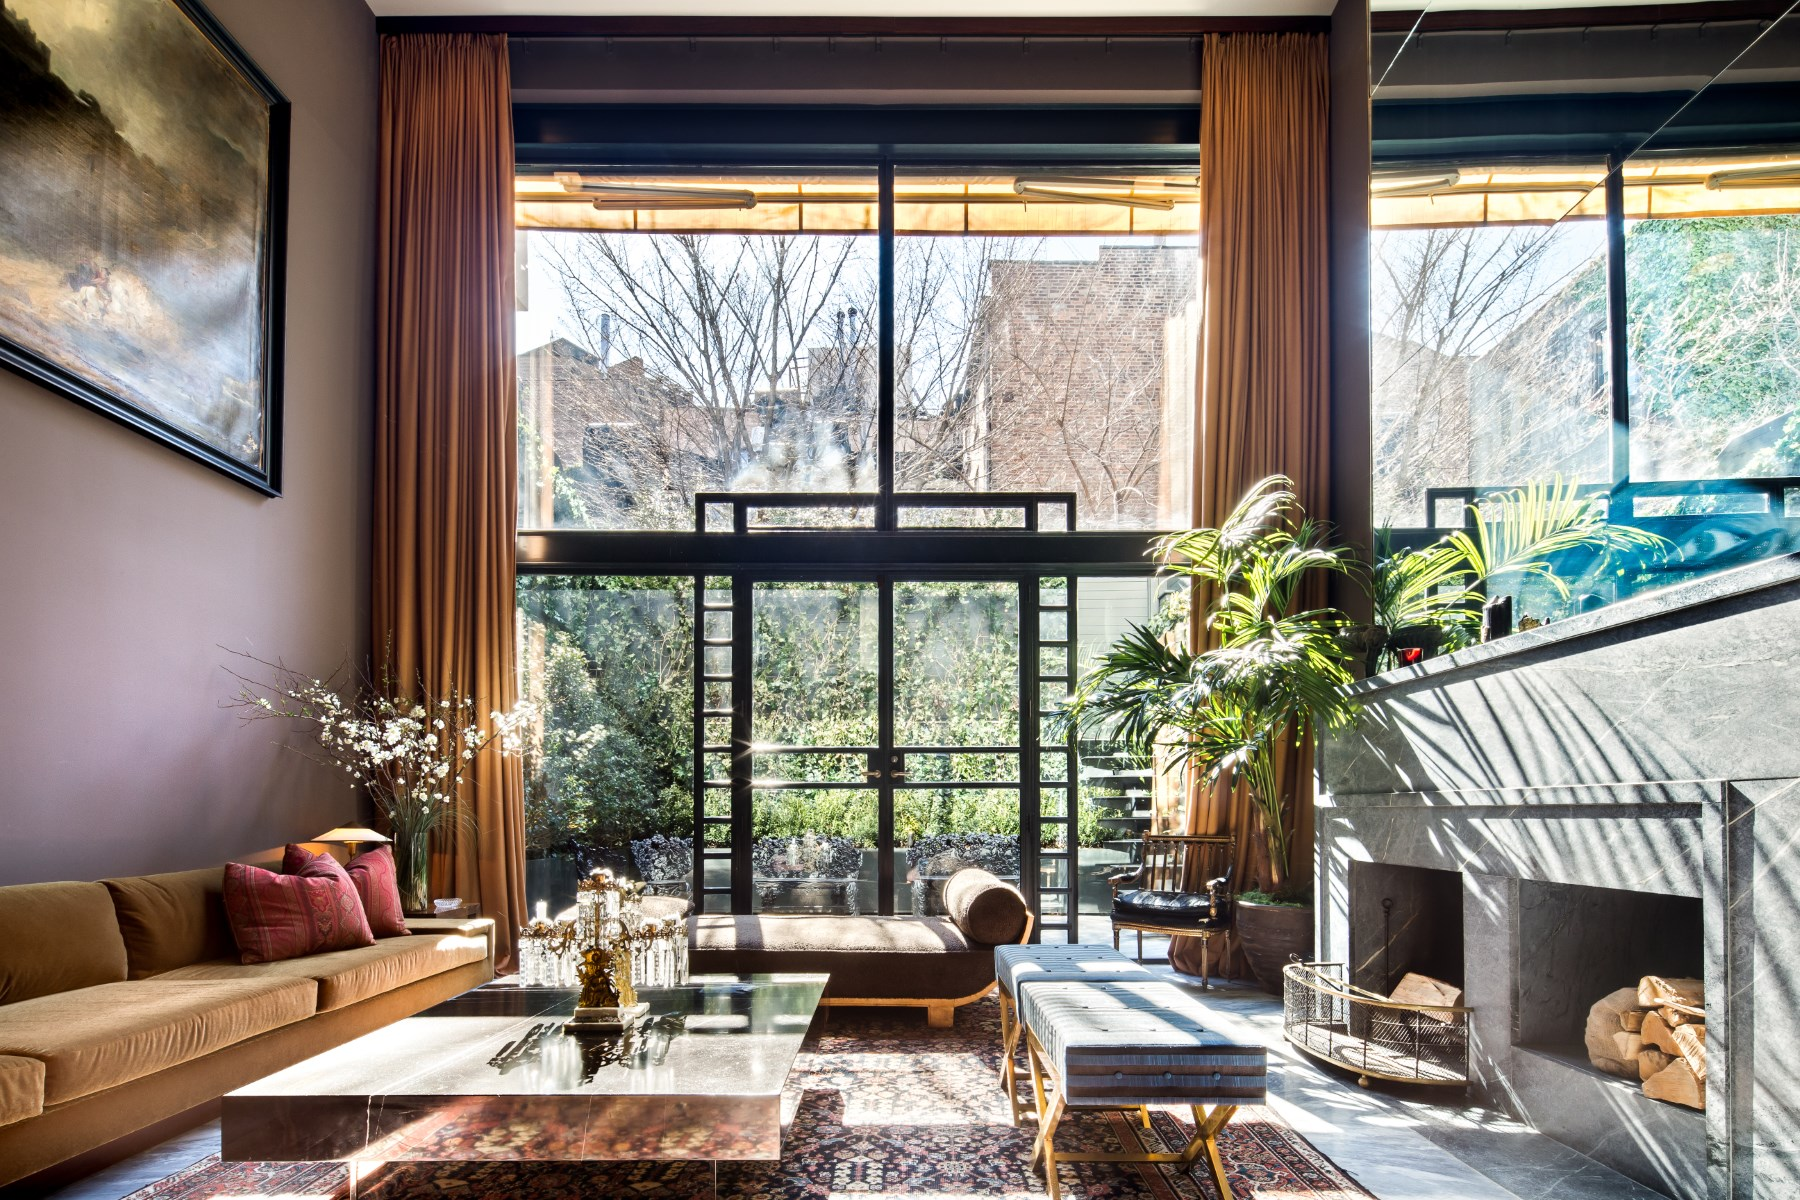 Single Family Home for Sale at 75 Bedford Street West Village, New York, New York 10014 United States